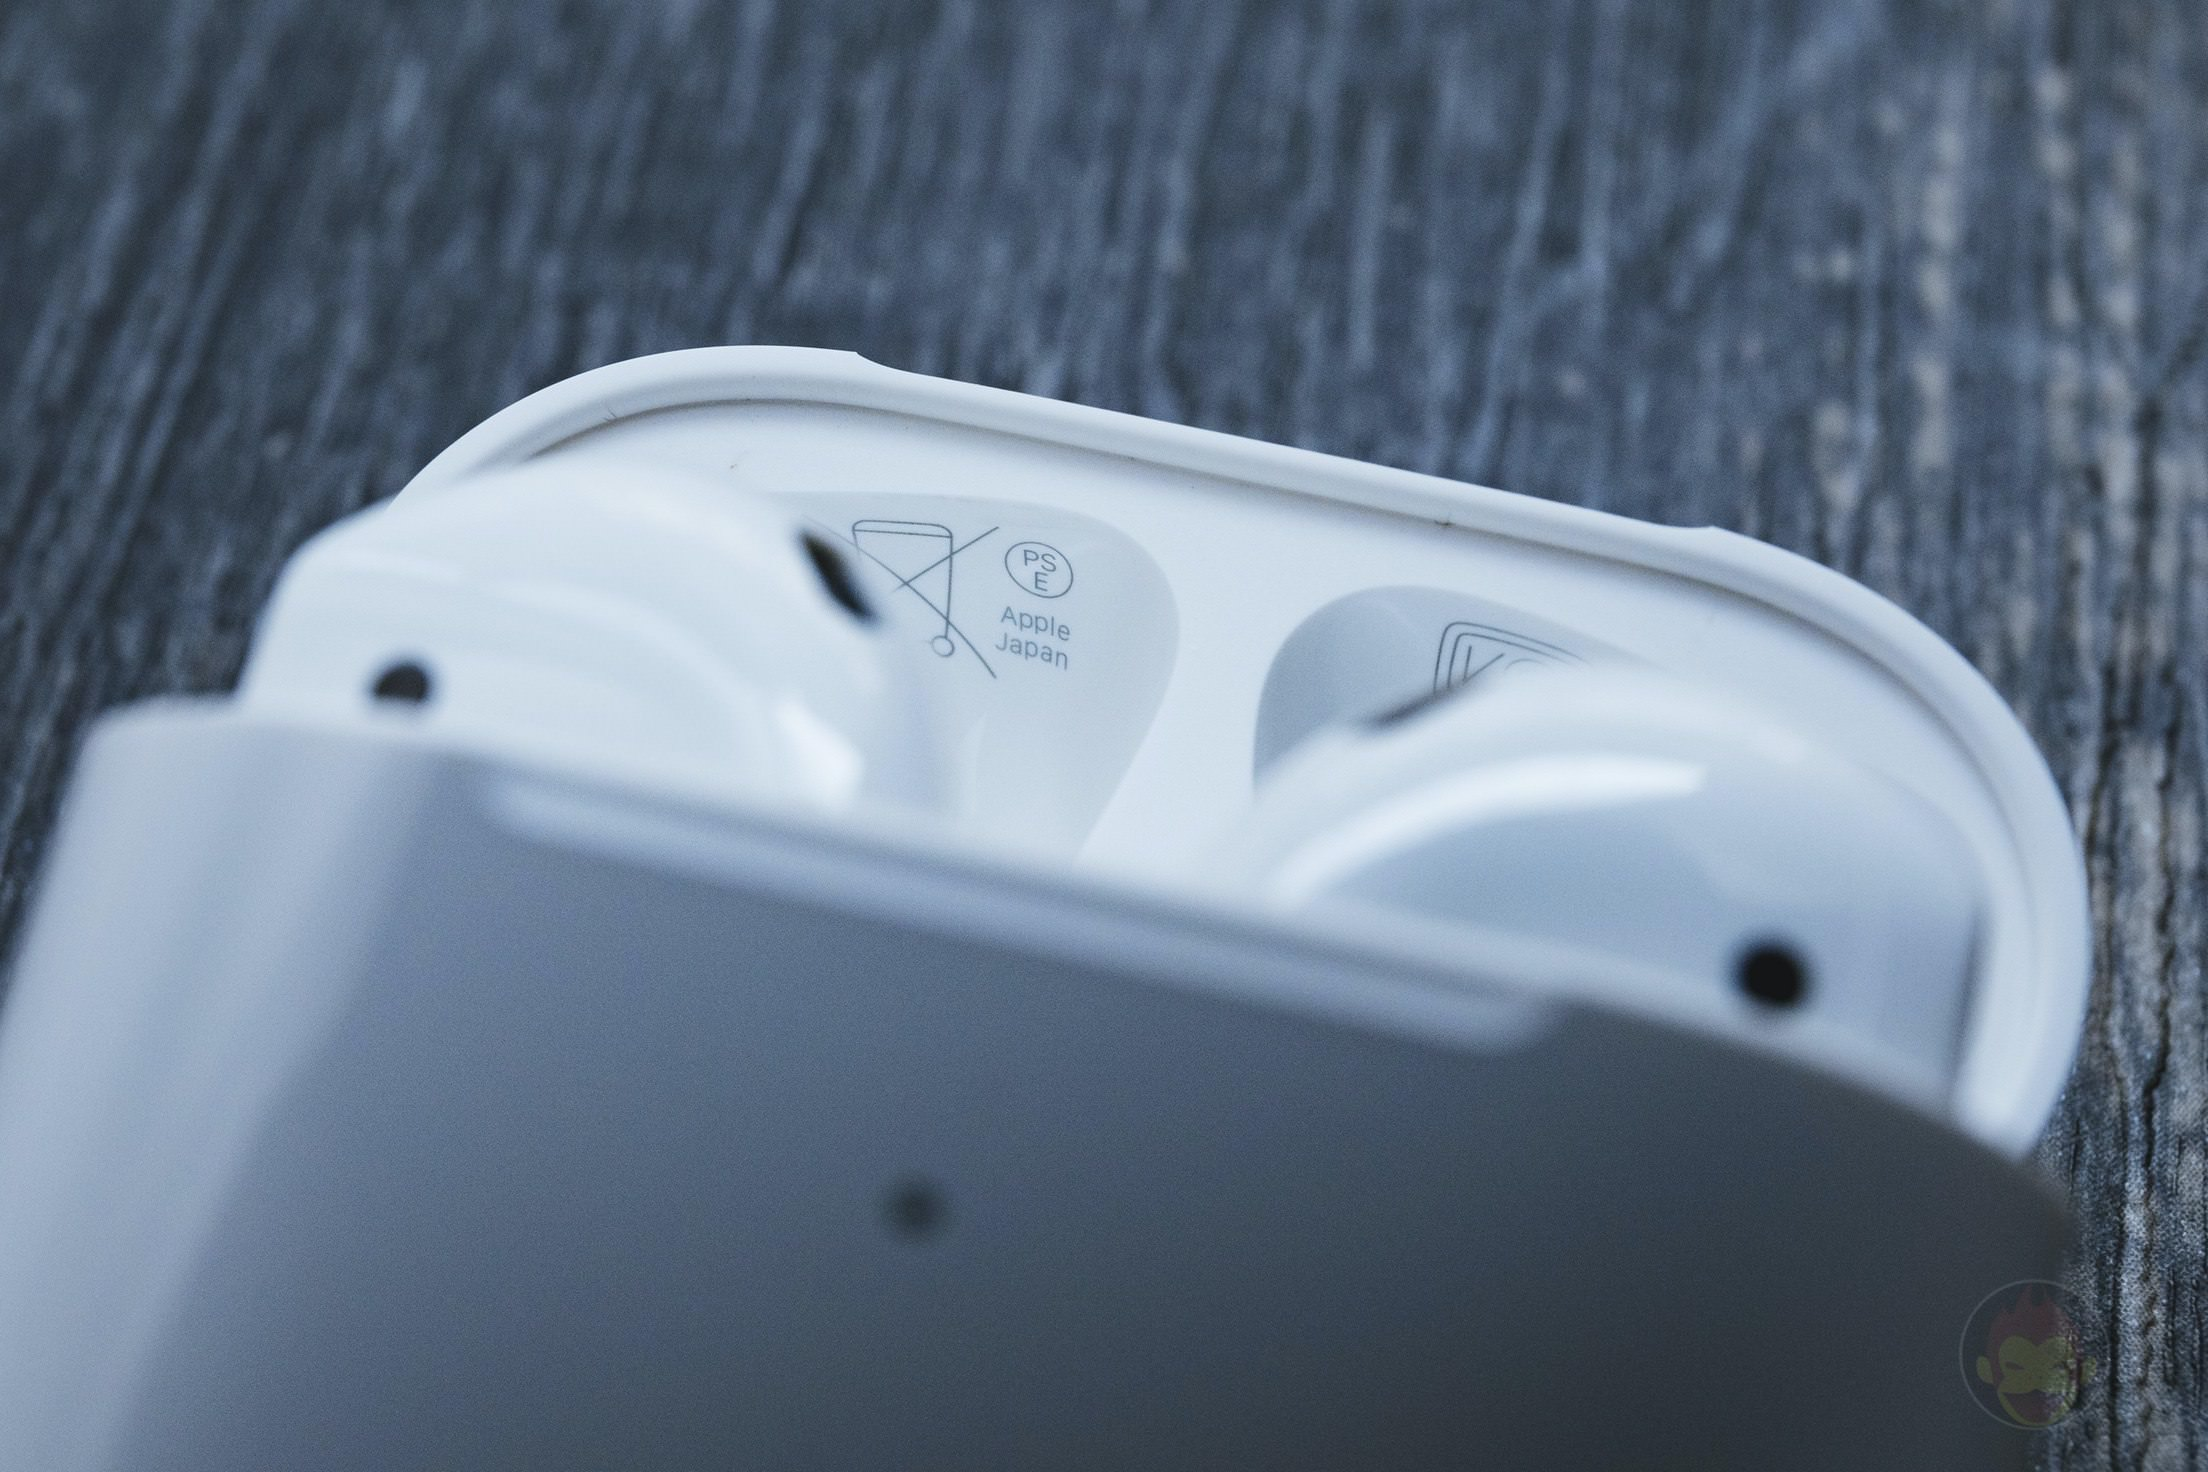 AirPods-2nd-Generation-2019-Review-09.jpg